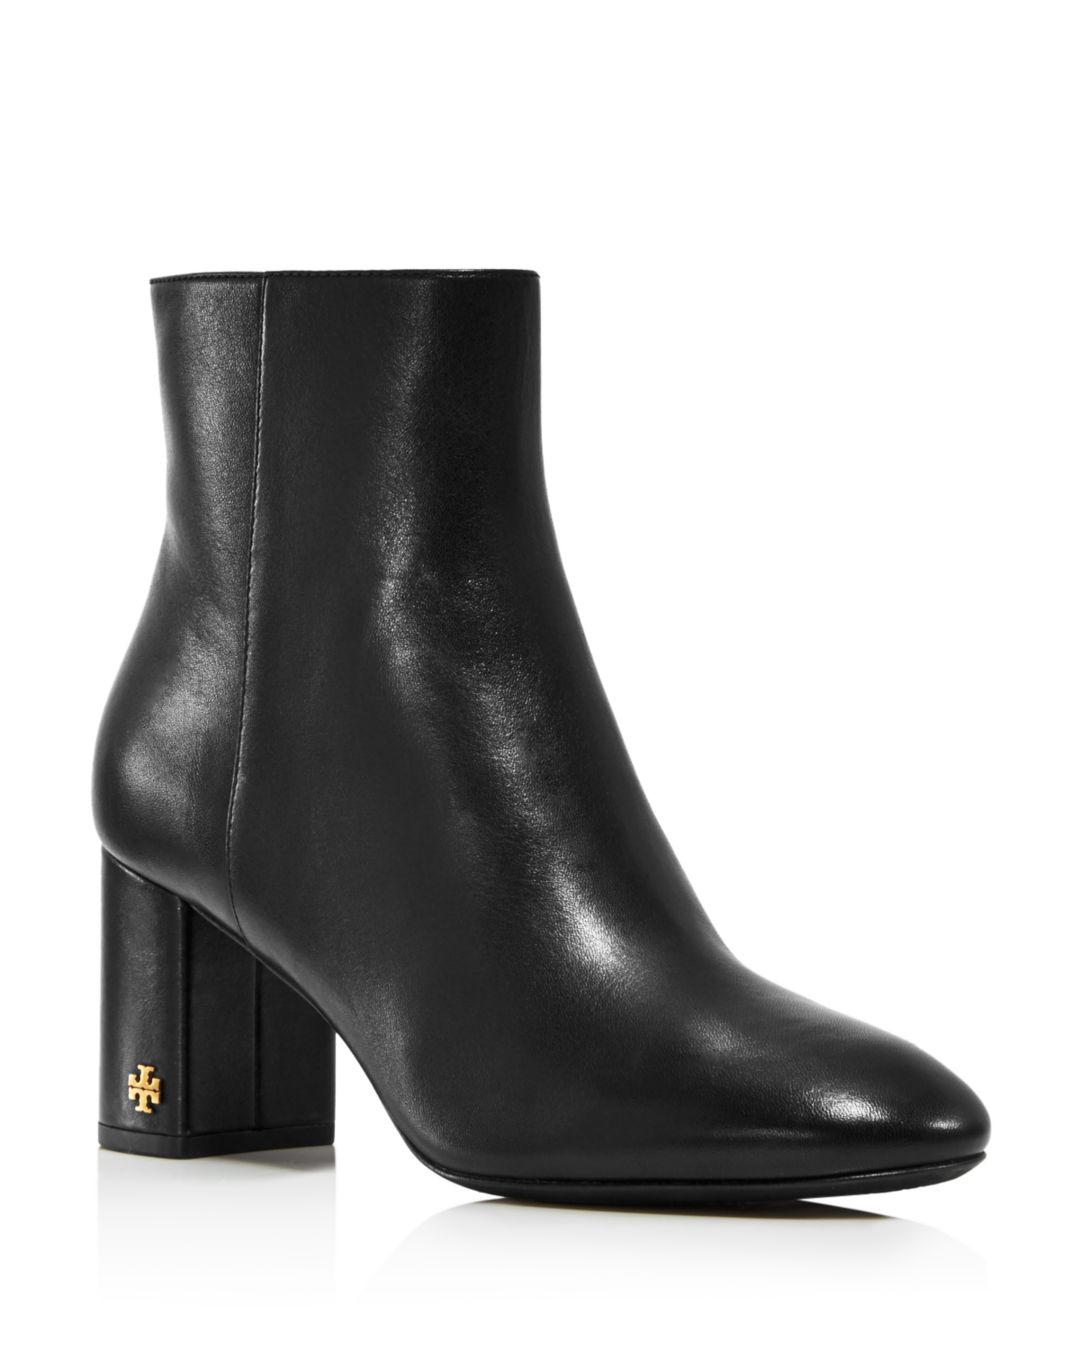 0a6fc03da Lyst - Tory Burch Women s Brooke Round Toe Leather Booties in Black